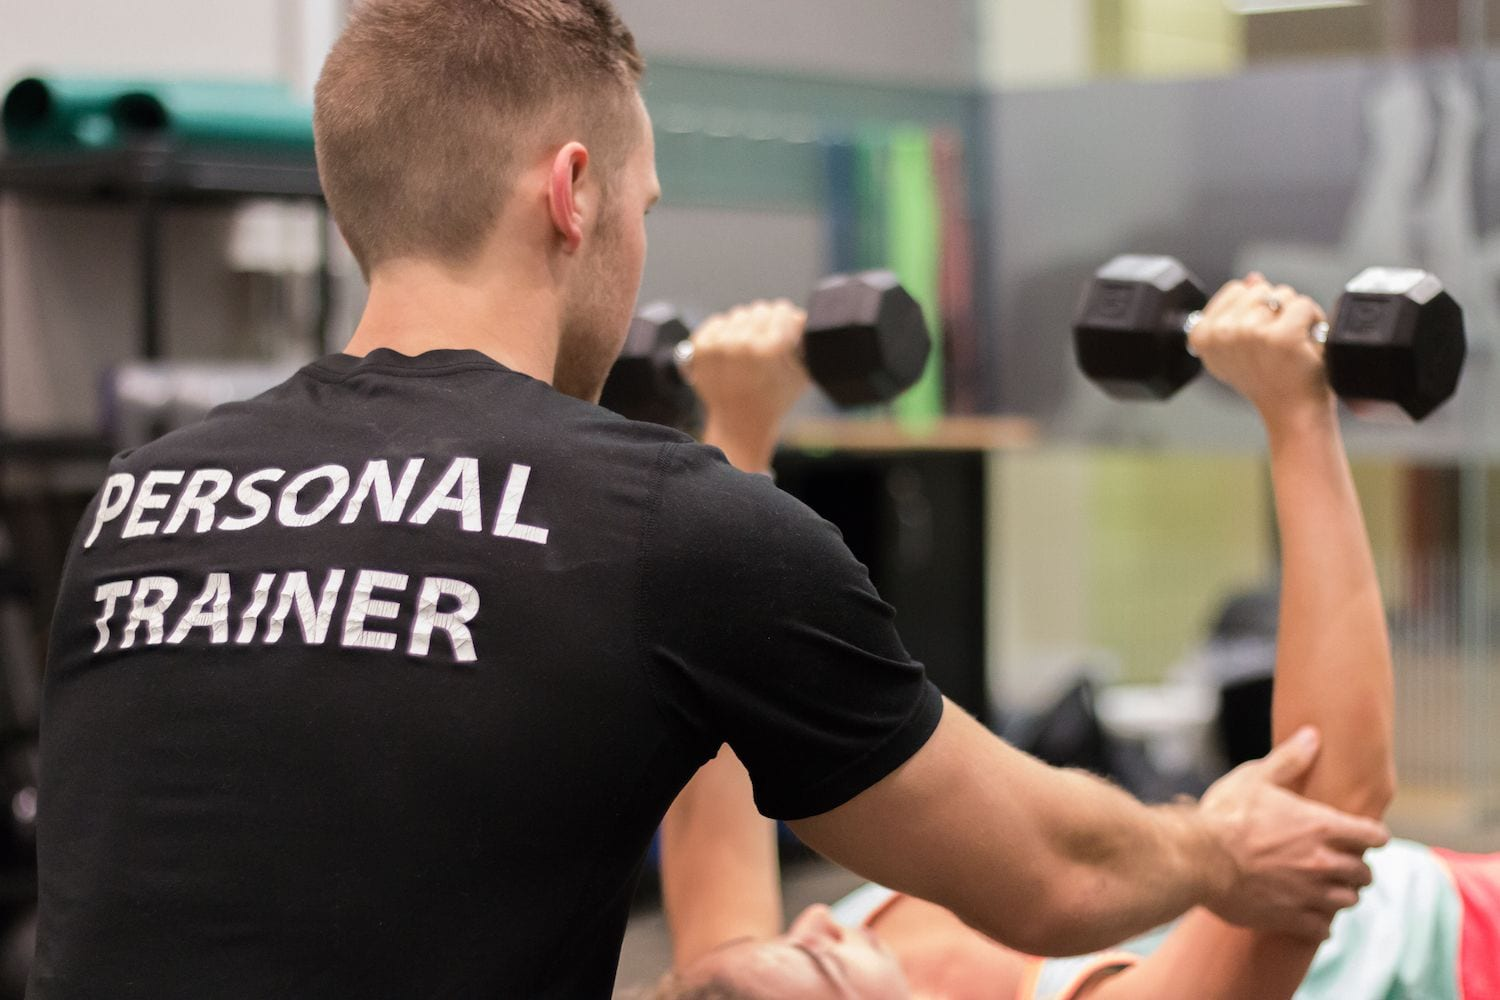 personal training trainer fitness session trainers